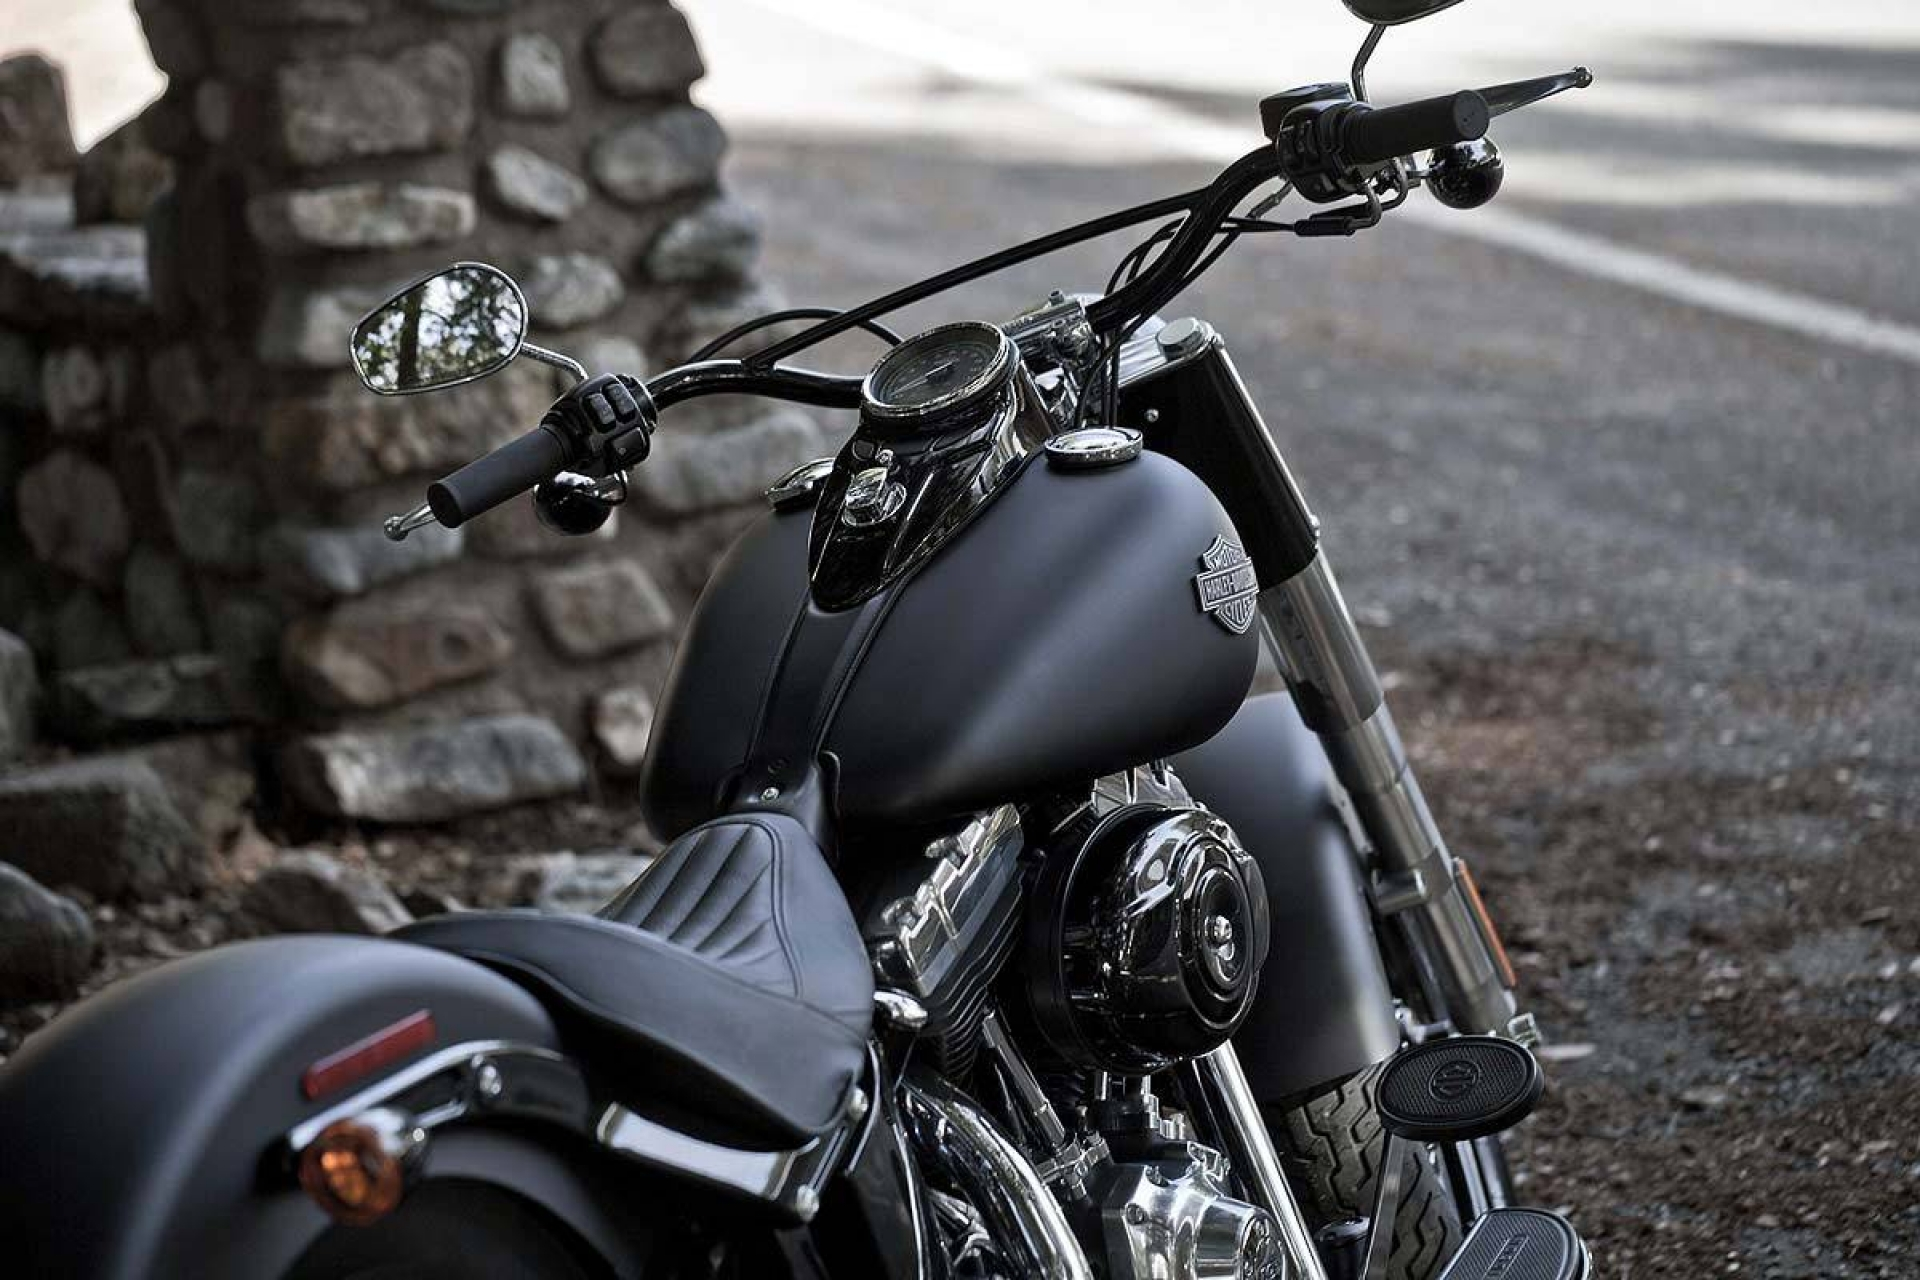 Harley davidson wallpapers high quality download free - Old school harley davidson wallpaper ...